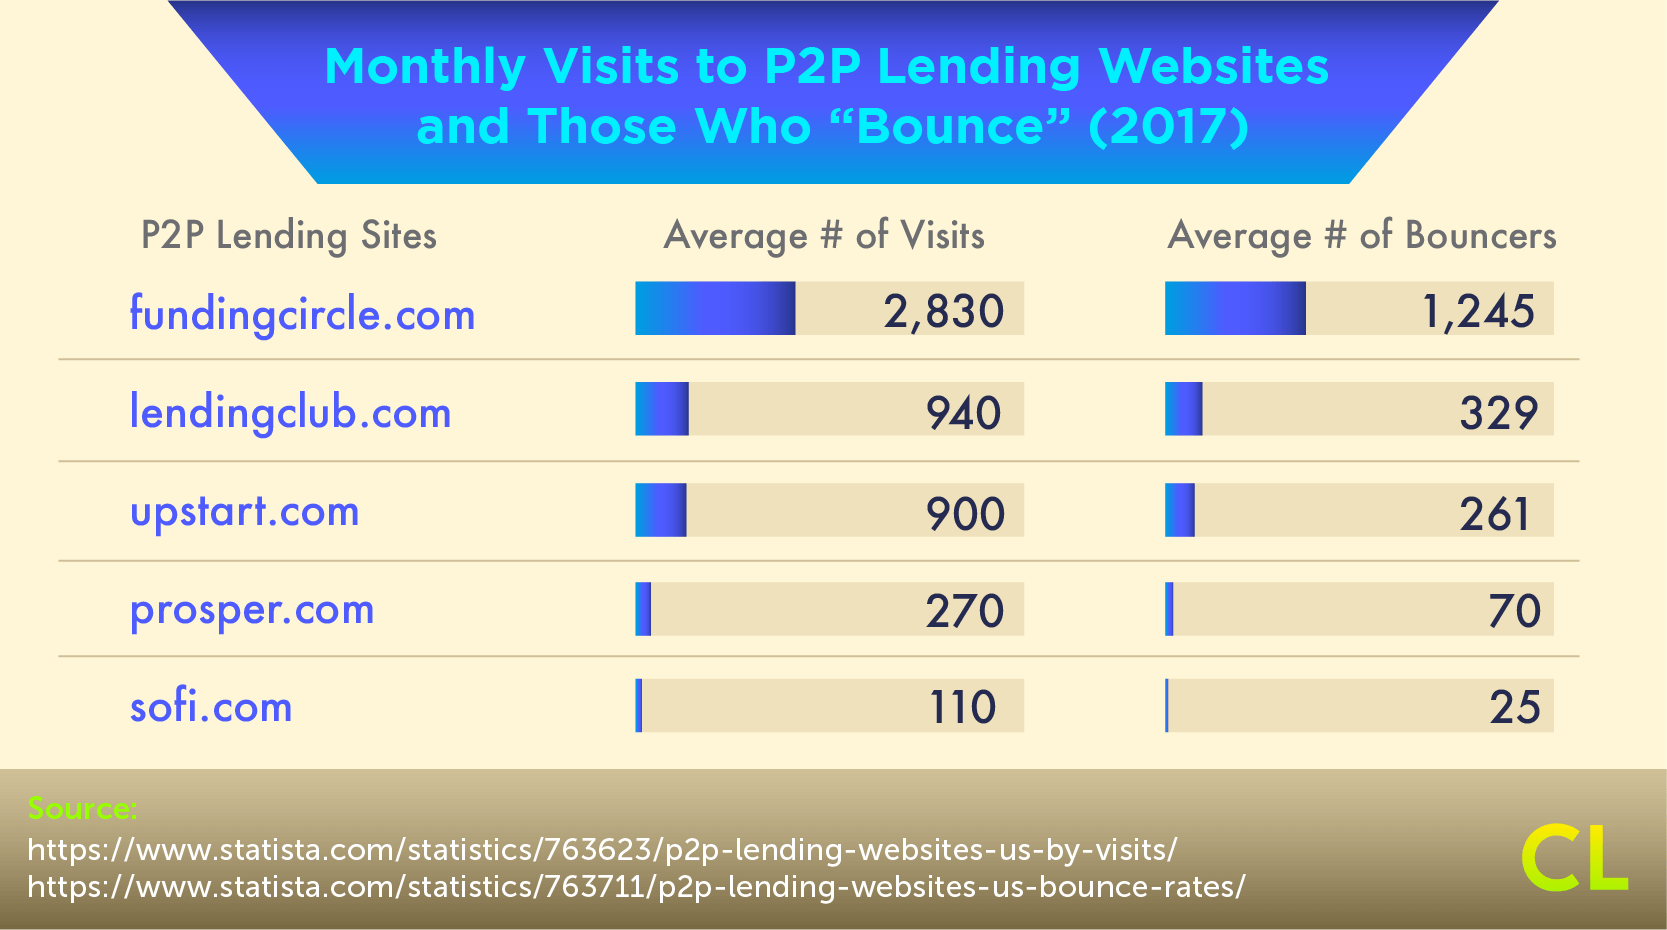 Monthly Visits to P2P Lending Websites and Those Who Bounce